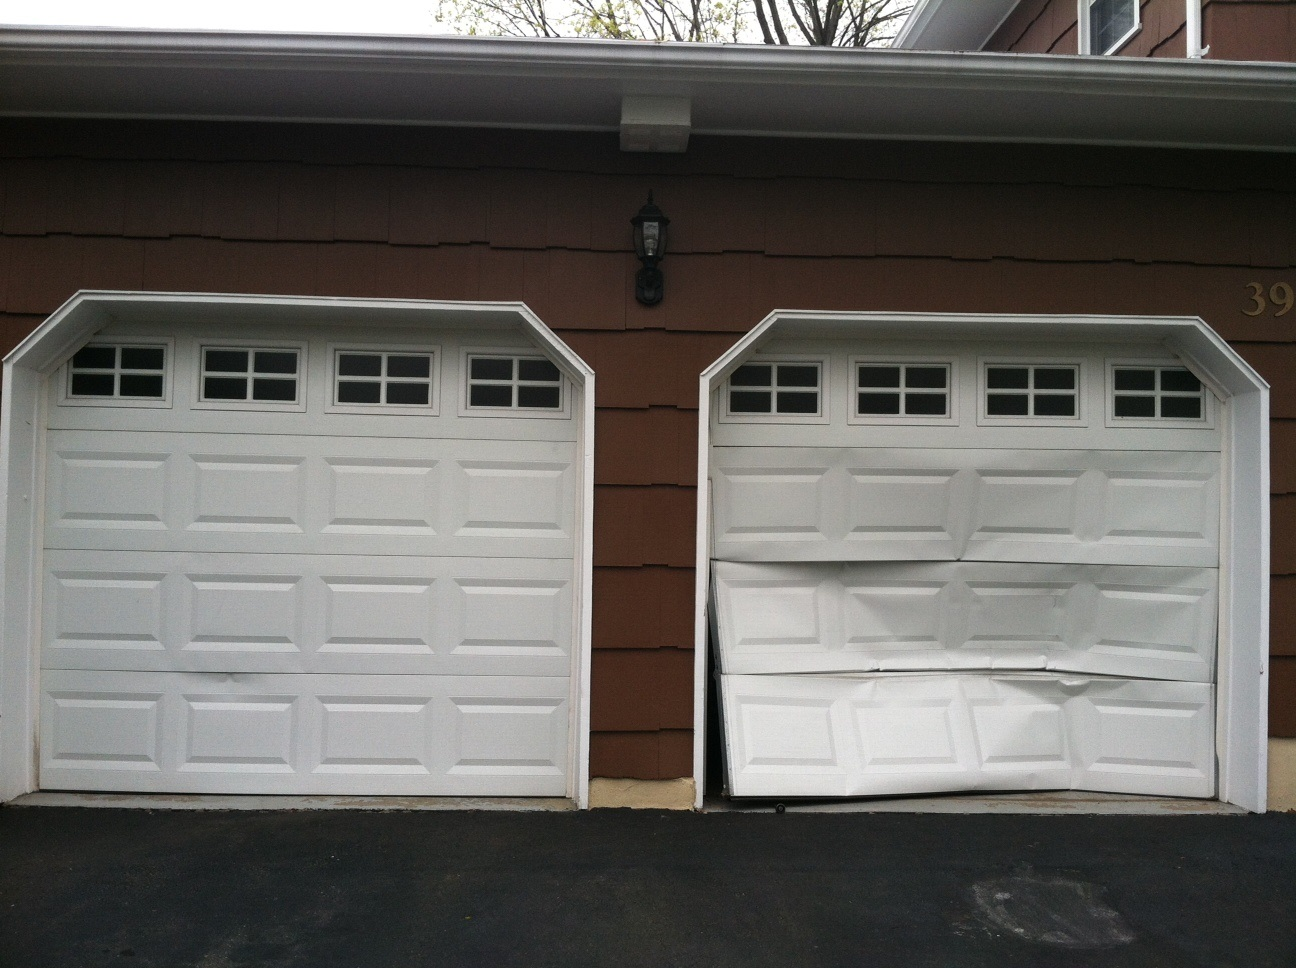 Garage Door Solutions In Severn 8360 Candlewick Ct, Severn, MD 21144    YP.com